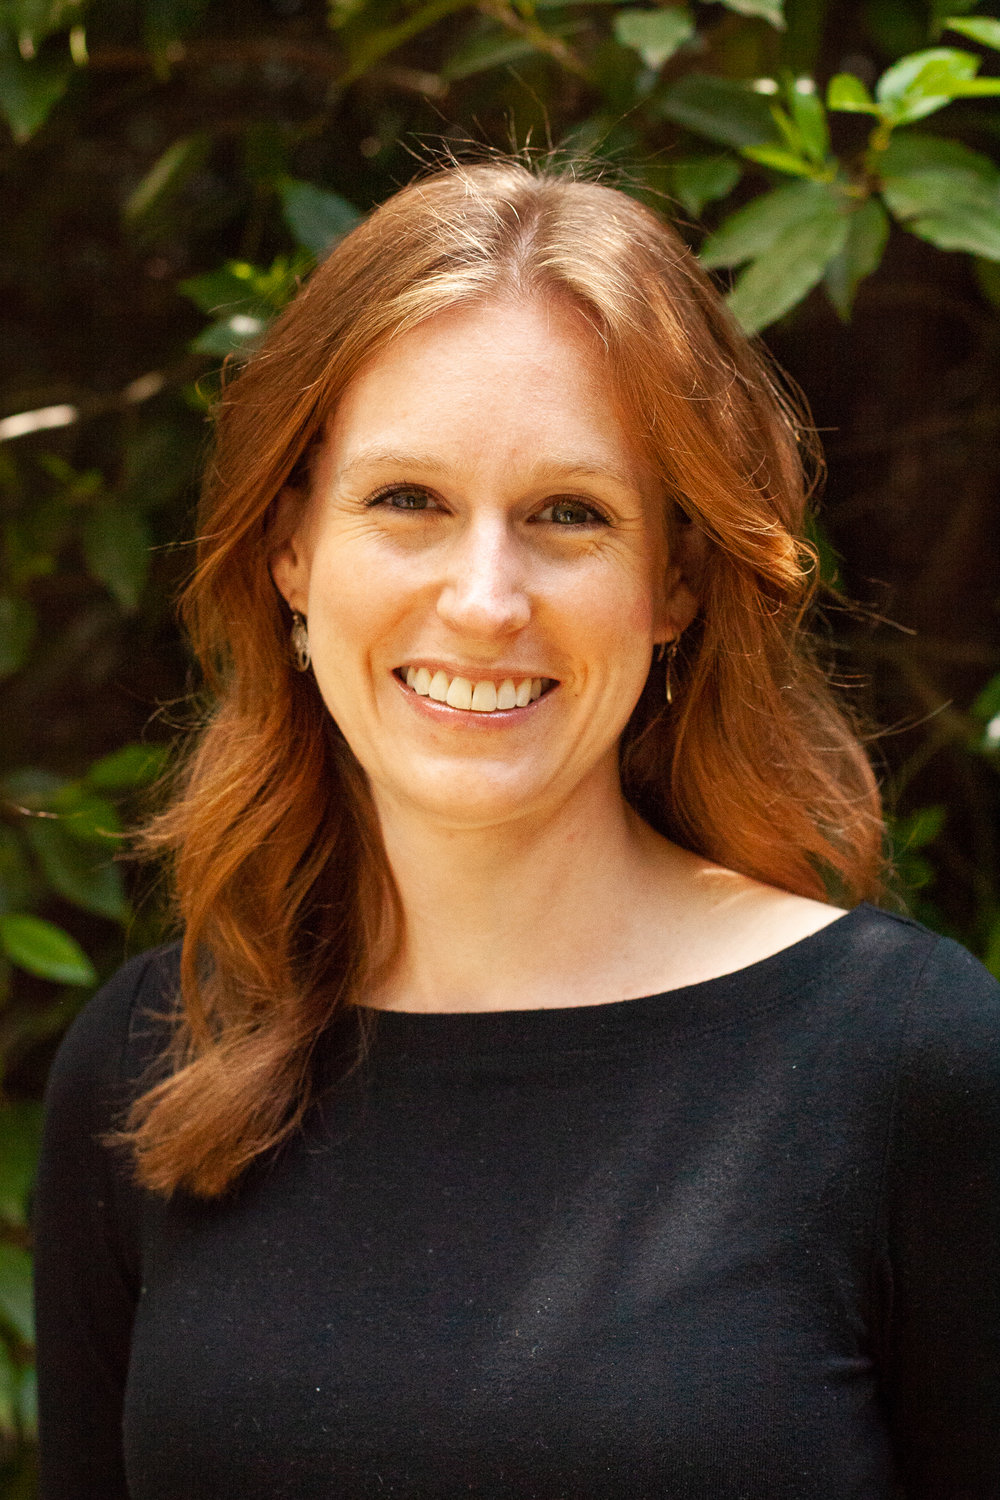 KAtherine Ferrell, MA, LMHC, therapist   ∙ Adults (Ages 18+) ∙ Behavioral Medicine & Holistic Health ∙ Mindfulness & Meditation ∙ Stress Reduction ∙ Depression ∙ Anxiety ∙ Self-Esteem ∙ Recovery From Drug & Alcohol Addiction ∙ Life Transitions ∙ LGBTQIA ∙ Kink/ Poly-Friendly